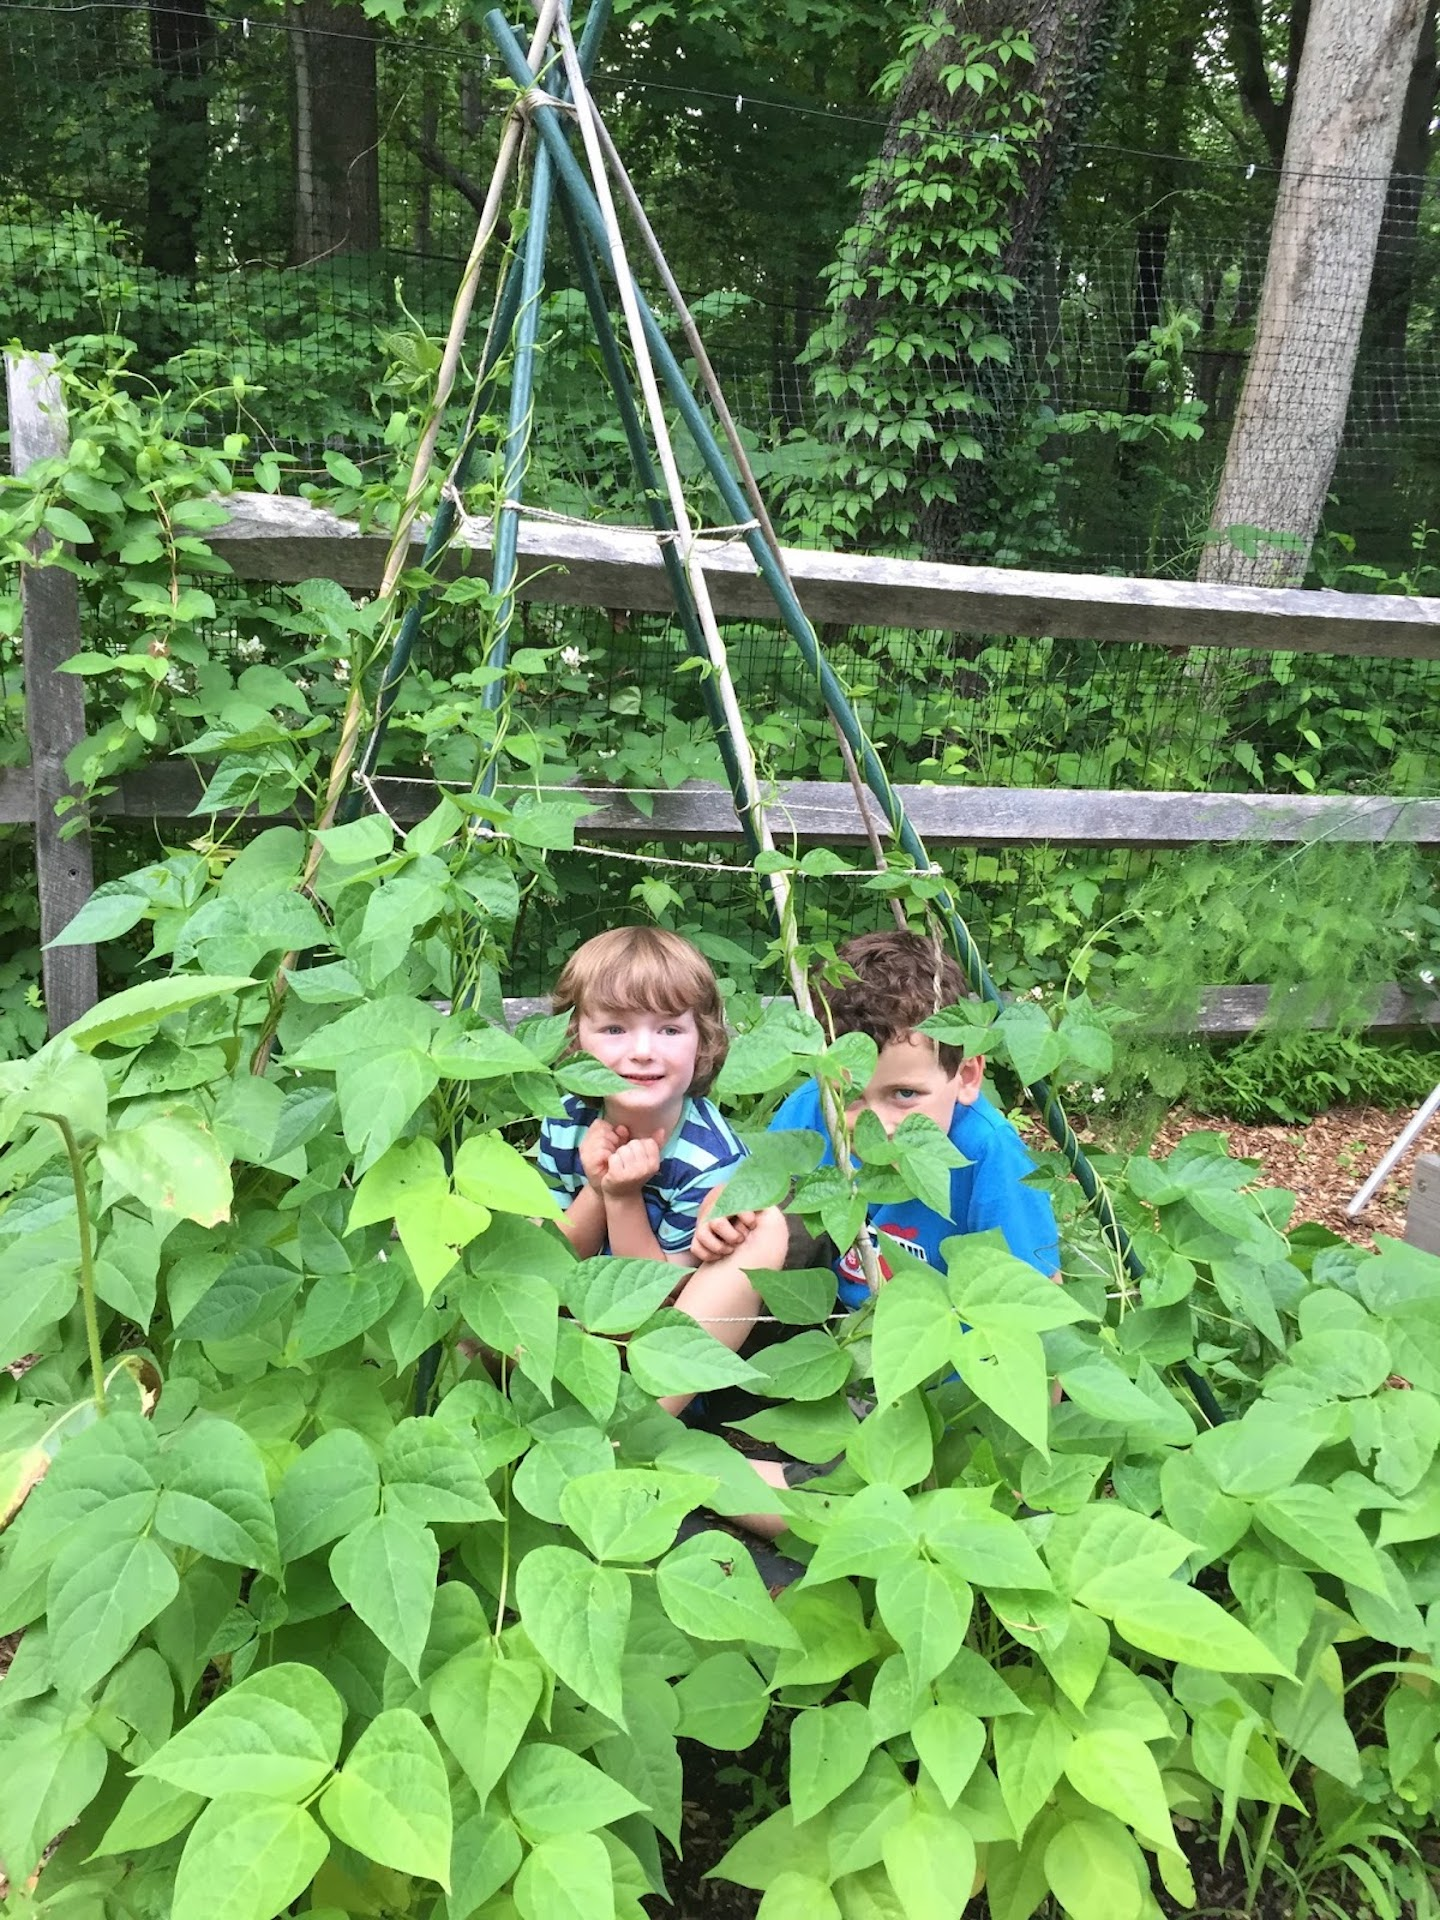 Bean teepee with two children inside.